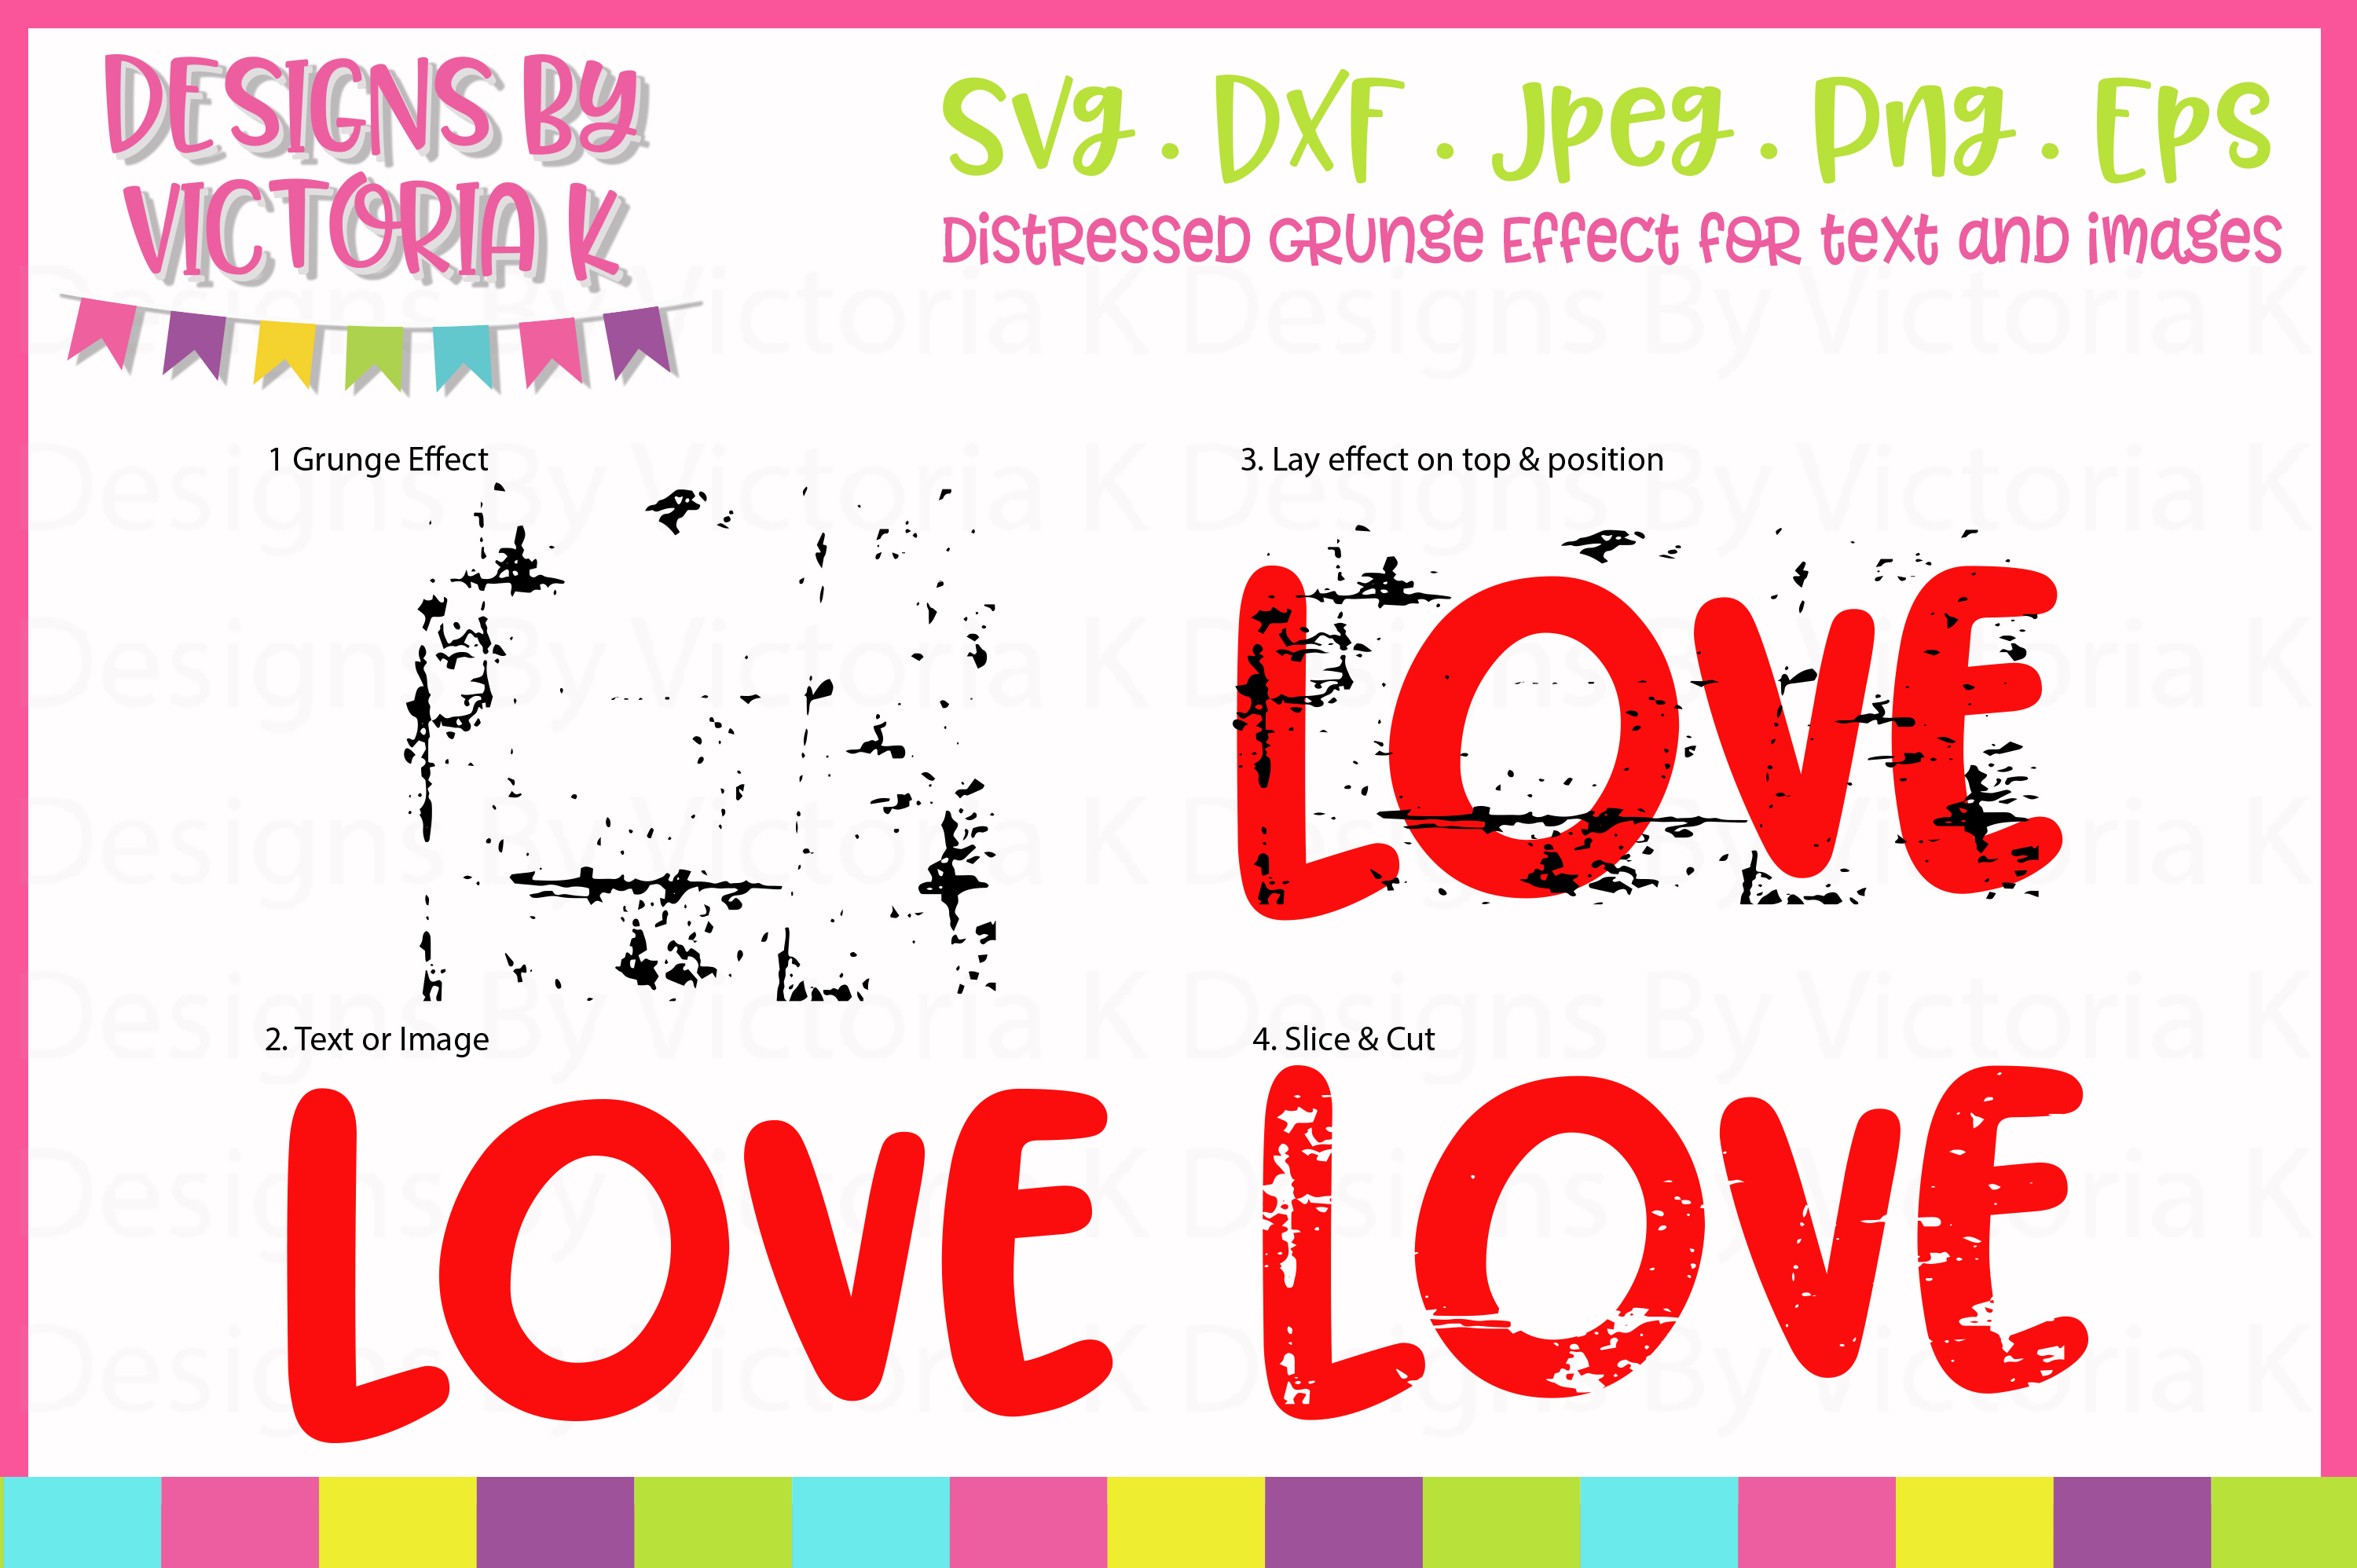 Grunge Effect, Distressed effect, SVG, DXF, PNG example image 2